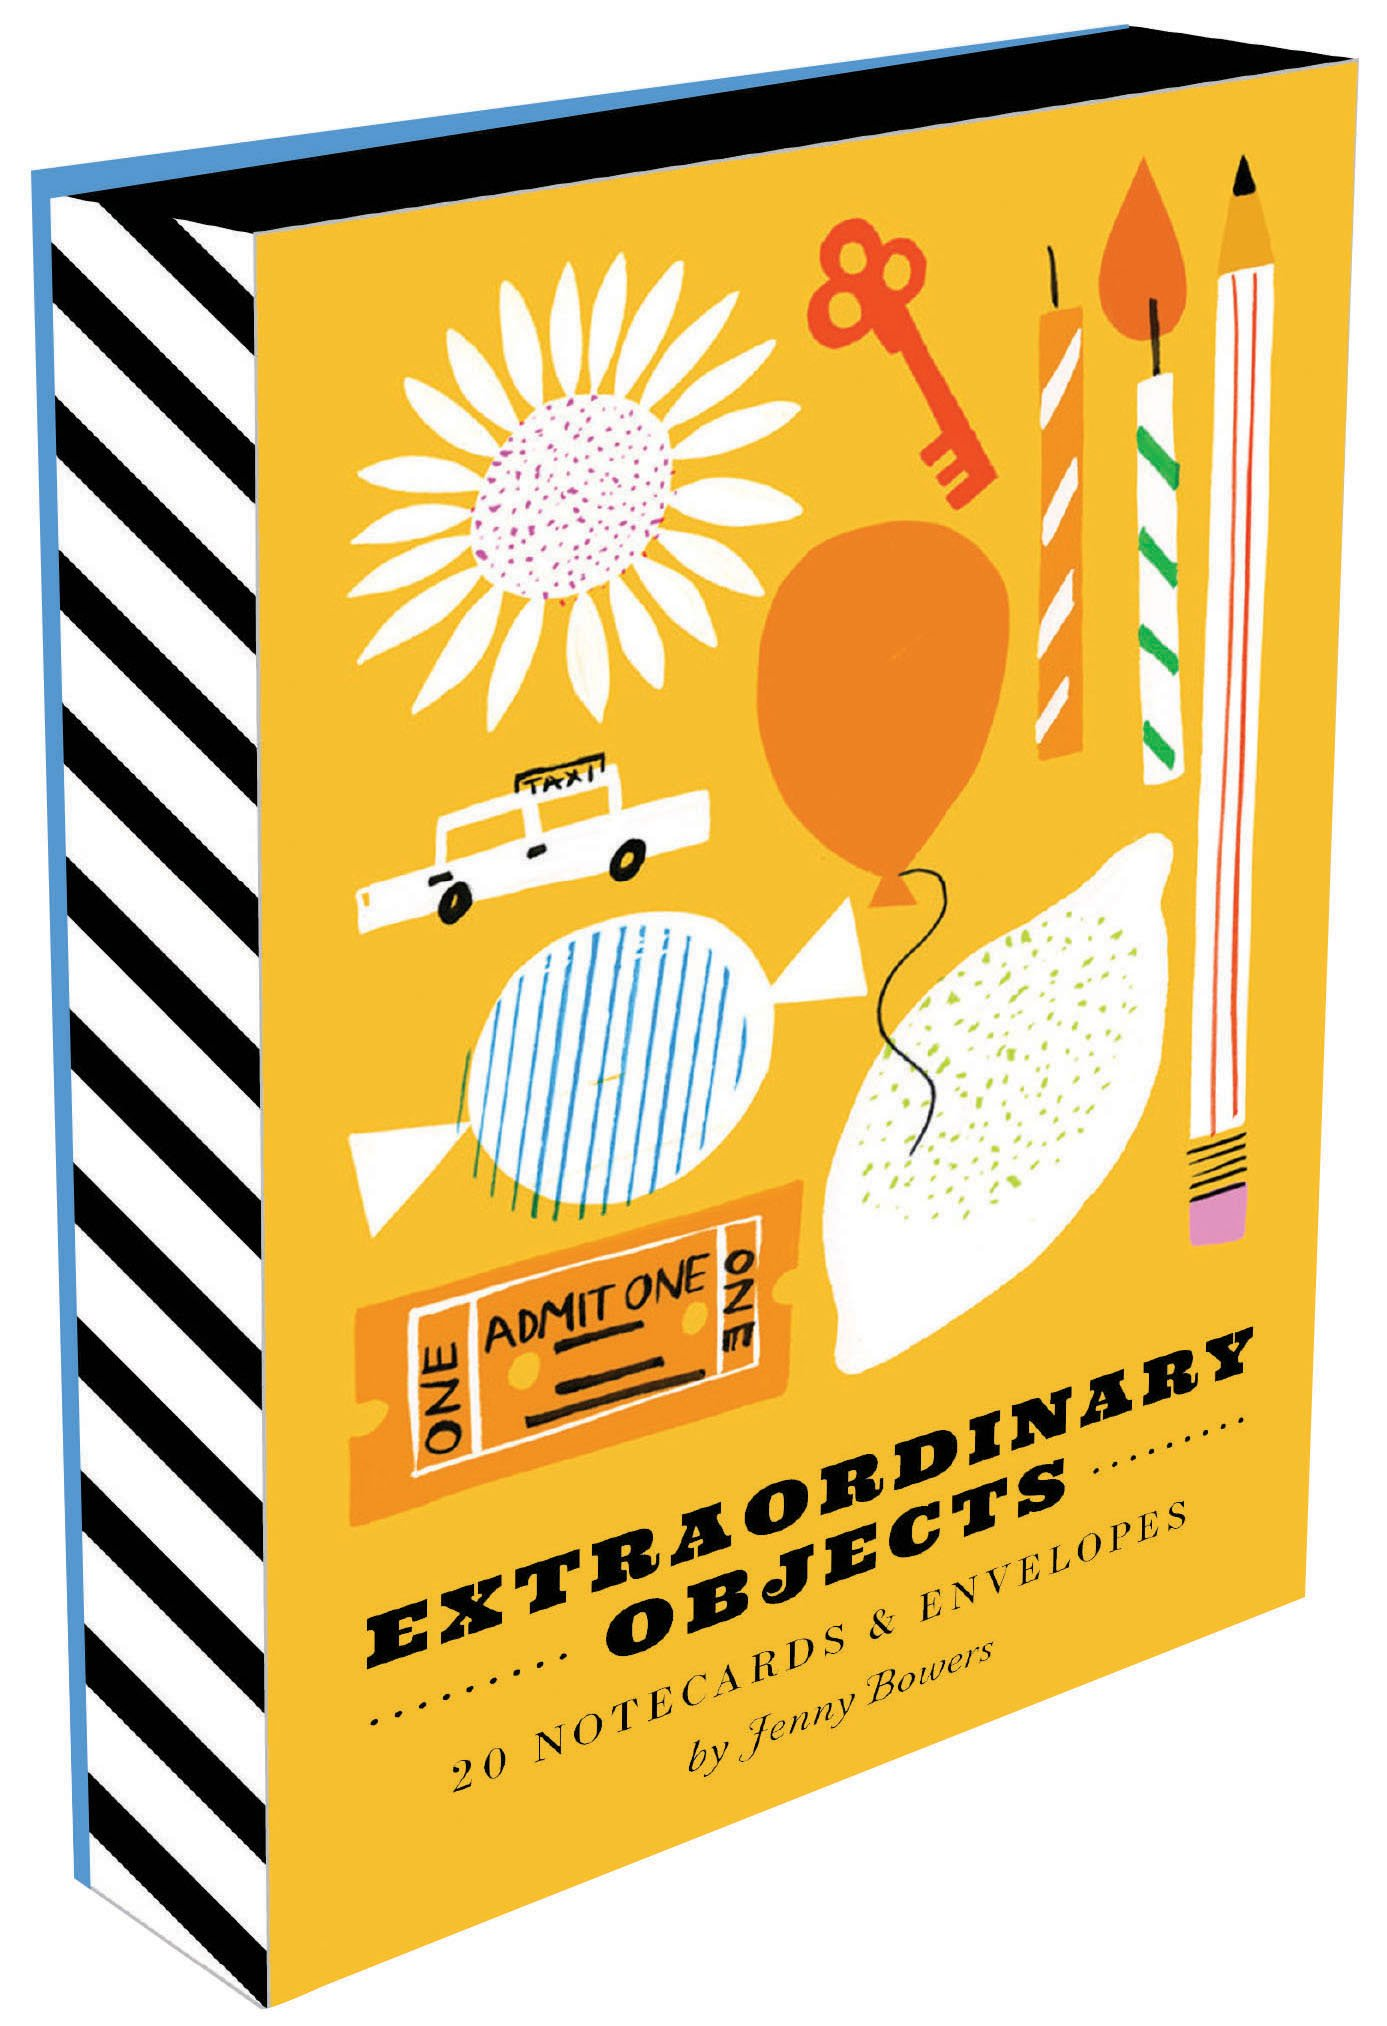 Download Extraordinary Objects Notes: 20 Different Notecards & Envelopes ebook